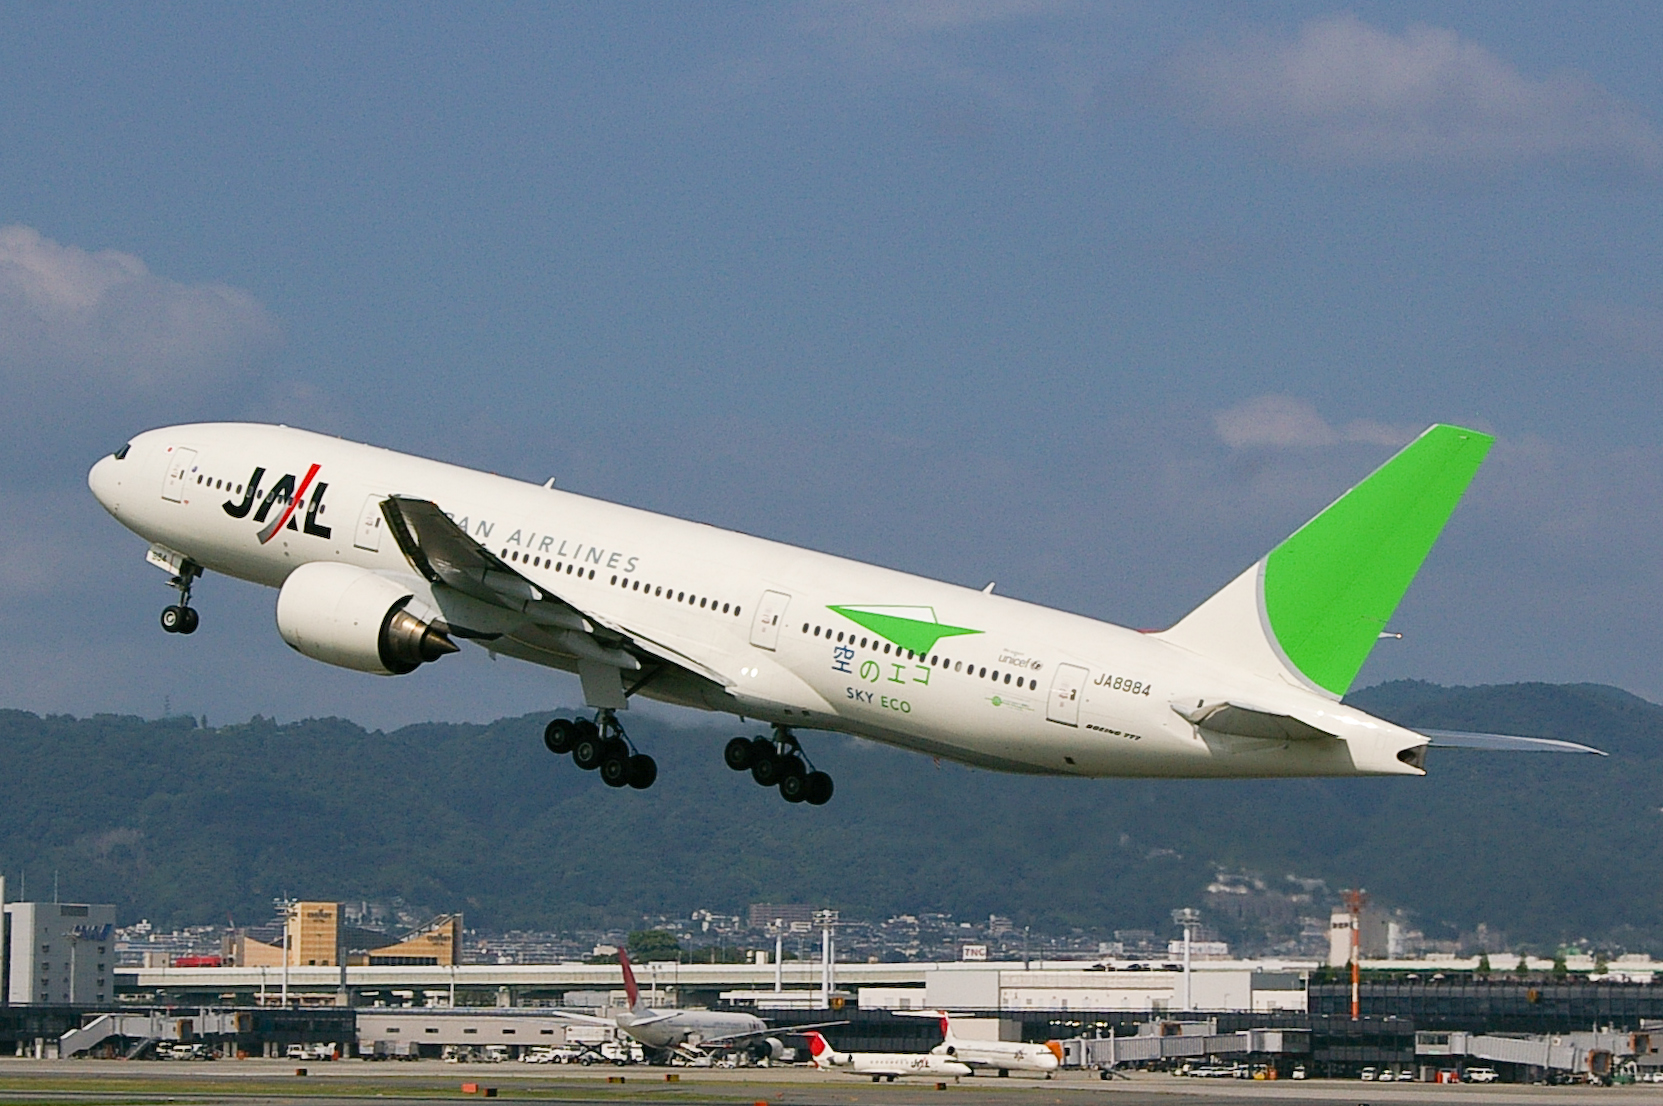 A Boeing 777–200 aircraft in mid air during take-off, with the view of Itami Airport in the background